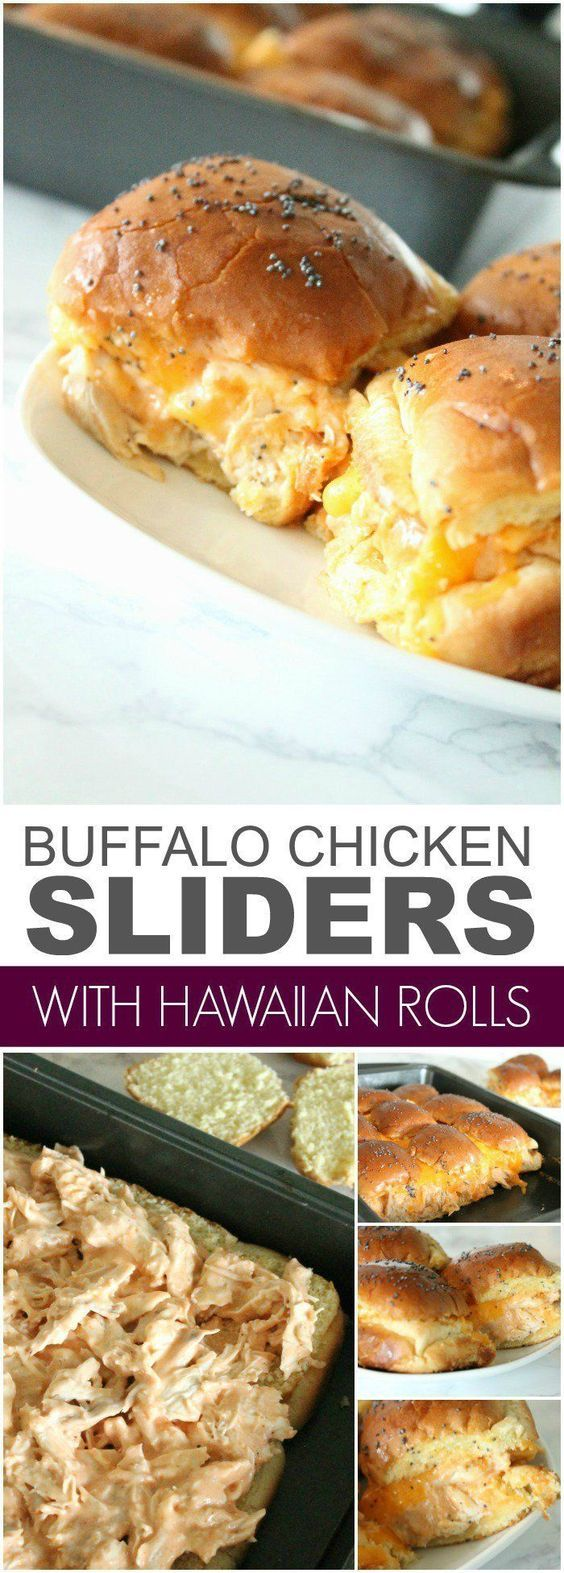 Buffalo Chicken Sliders! Football Tailgating Recipes and Party Food Ideas! Having company for the big game? These are the perfect Appetizer, Snack, or Meal Idea!